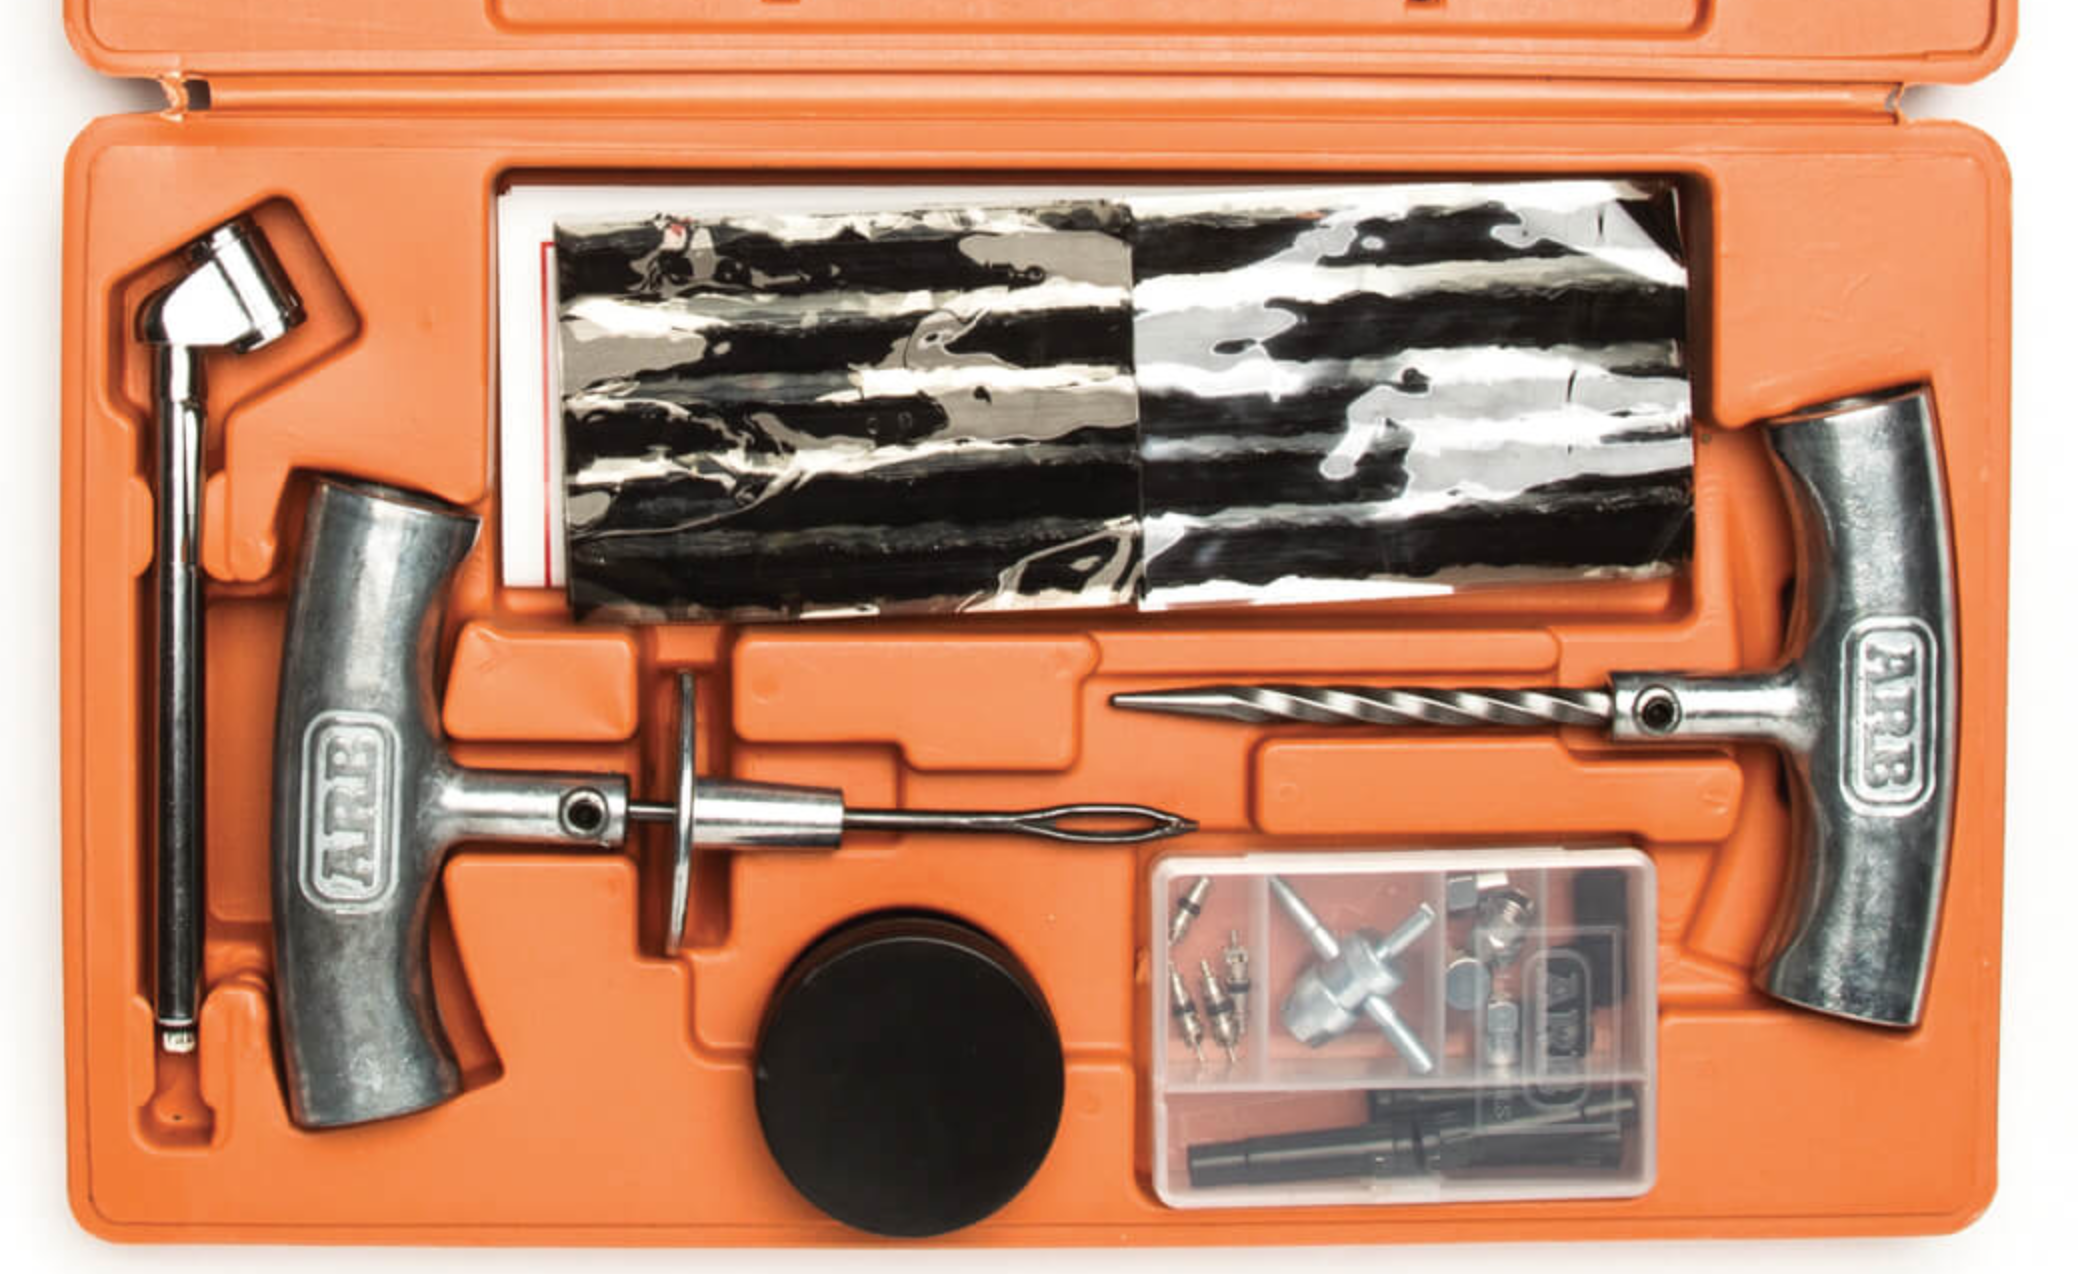 The ARB Speedy Seal kit includes a proper metal-handled reamer and plug inserter.